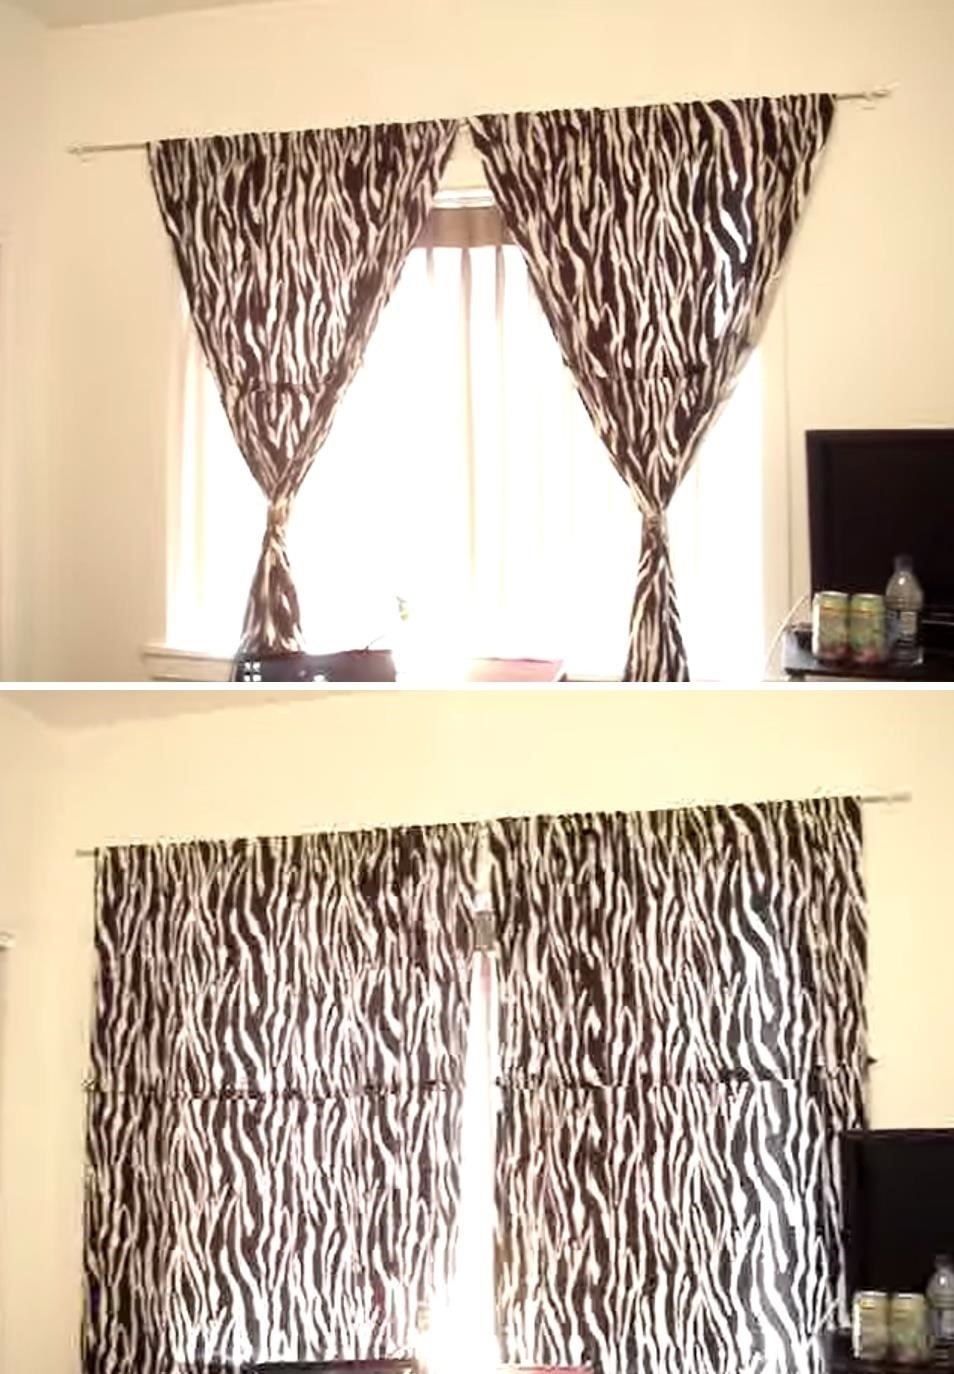 Hanging Curtains Best 25 How To Hang Curtains Ideas Only On Within Hanging Curtains (View 9 of 25)